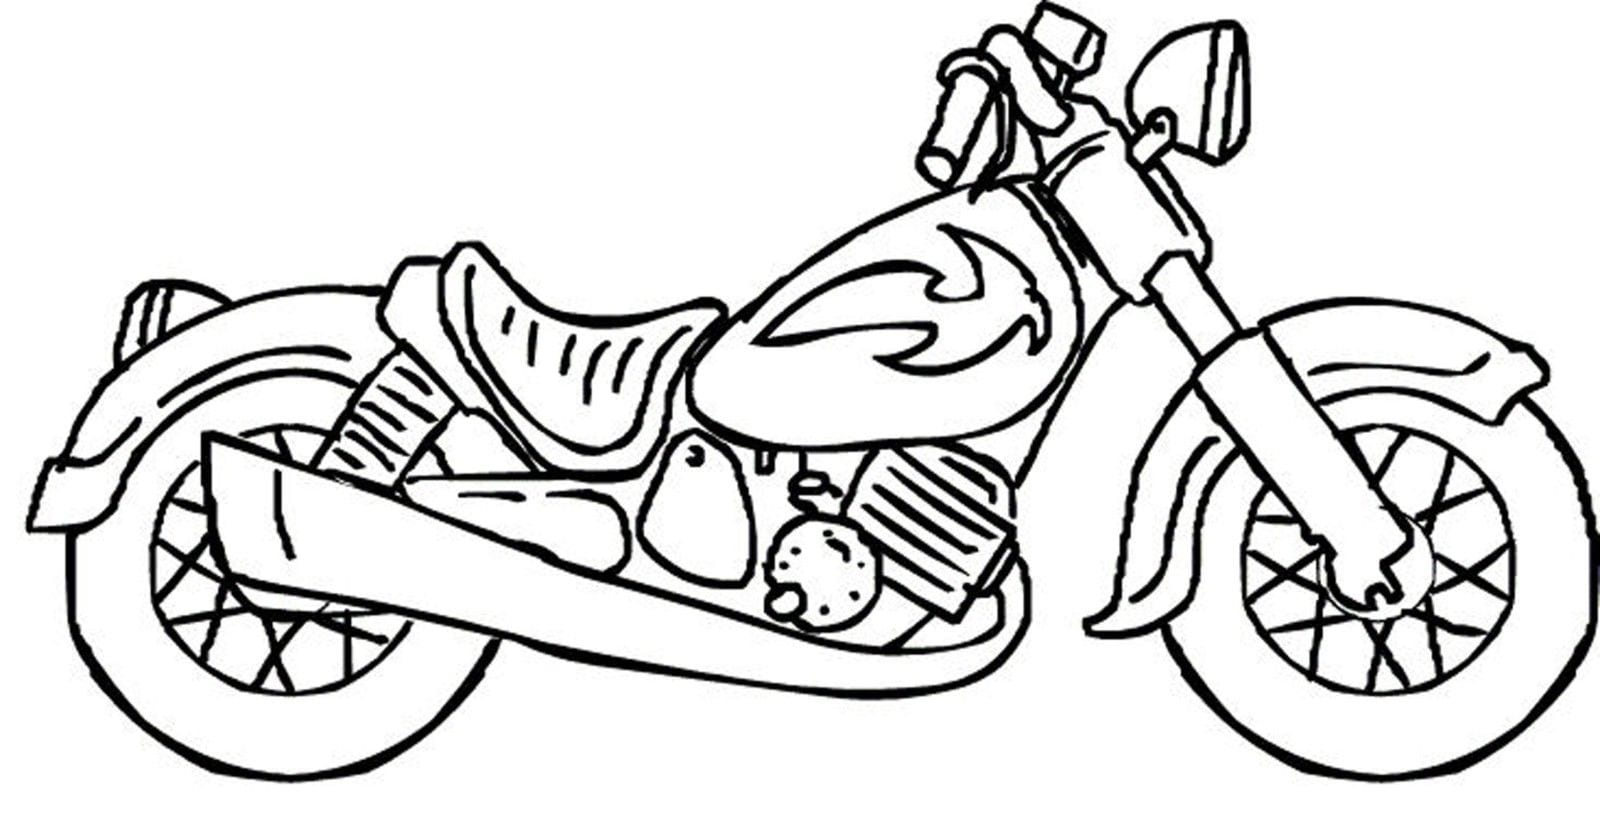 Authentic Coloring Pages For Boys Attractive Colouring To Sweet